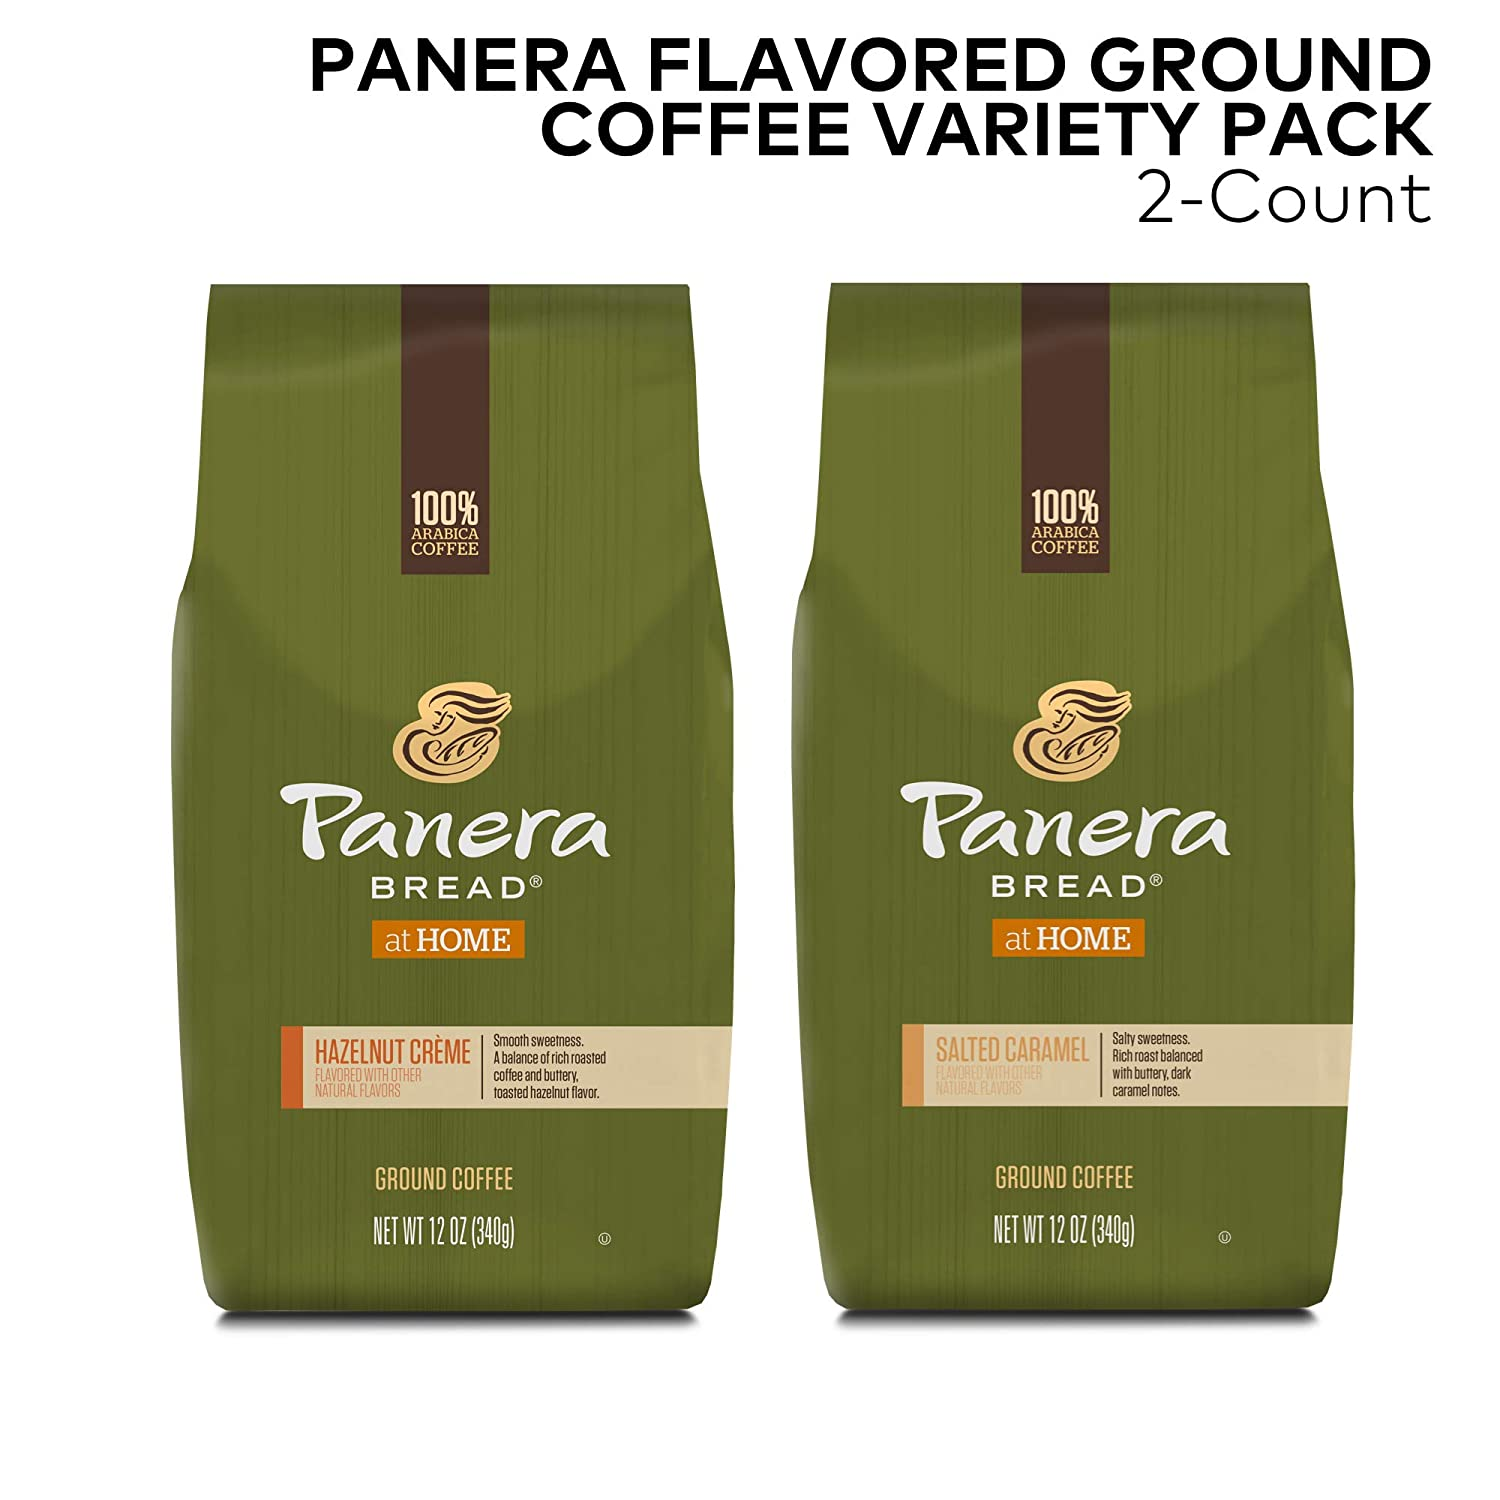 Panera Flavored Ground Coffee Variety Pack, 2 count